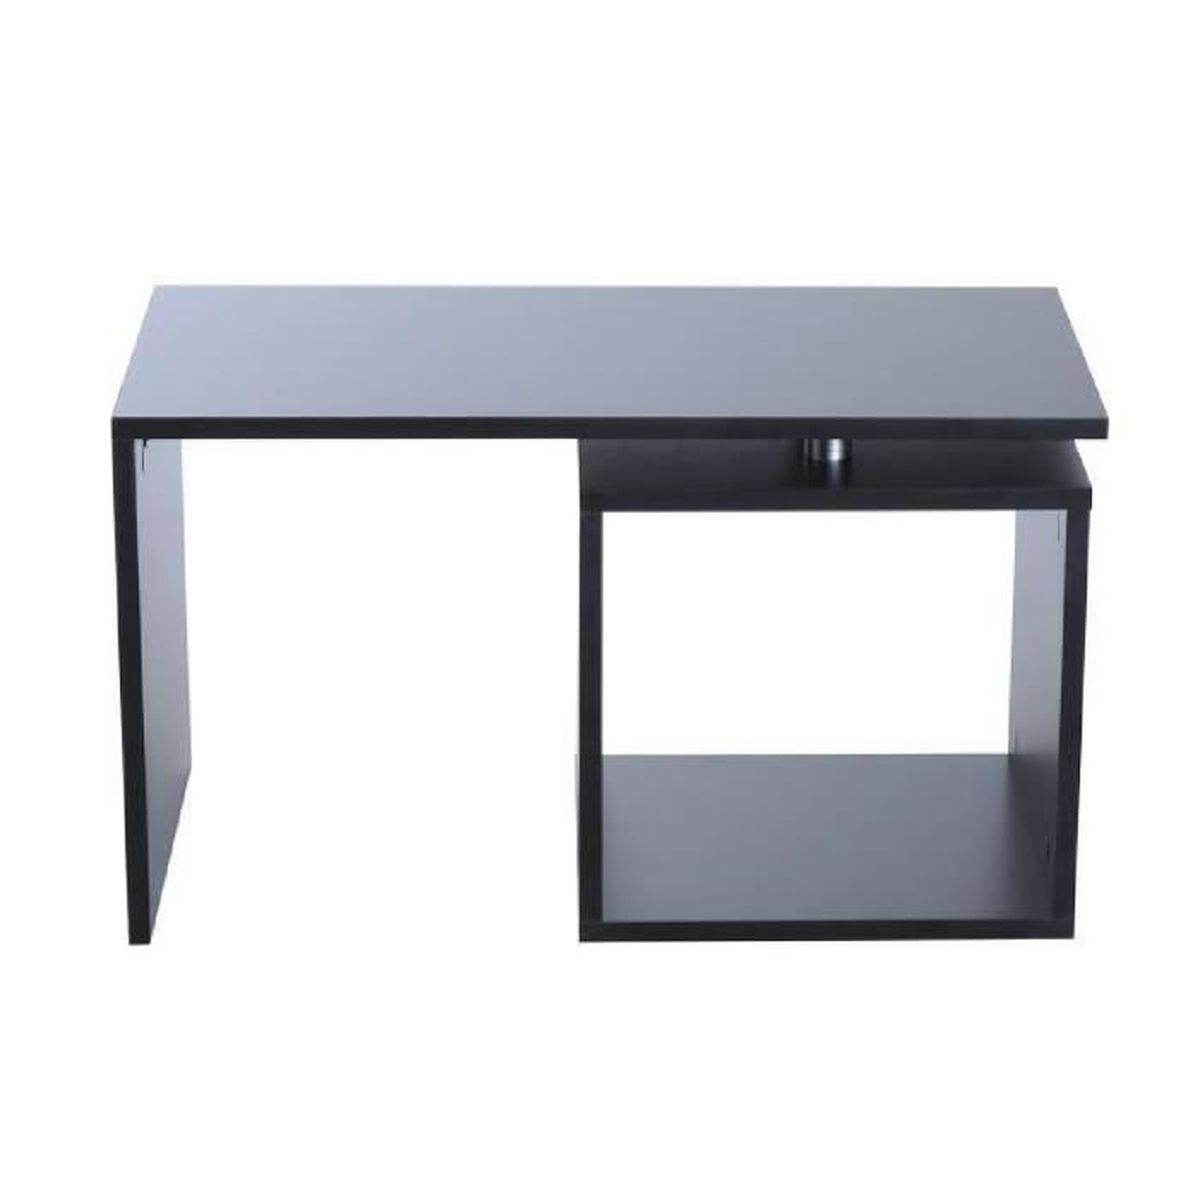 Table de salon avec rangement maison design - Table basse salon moderne ...